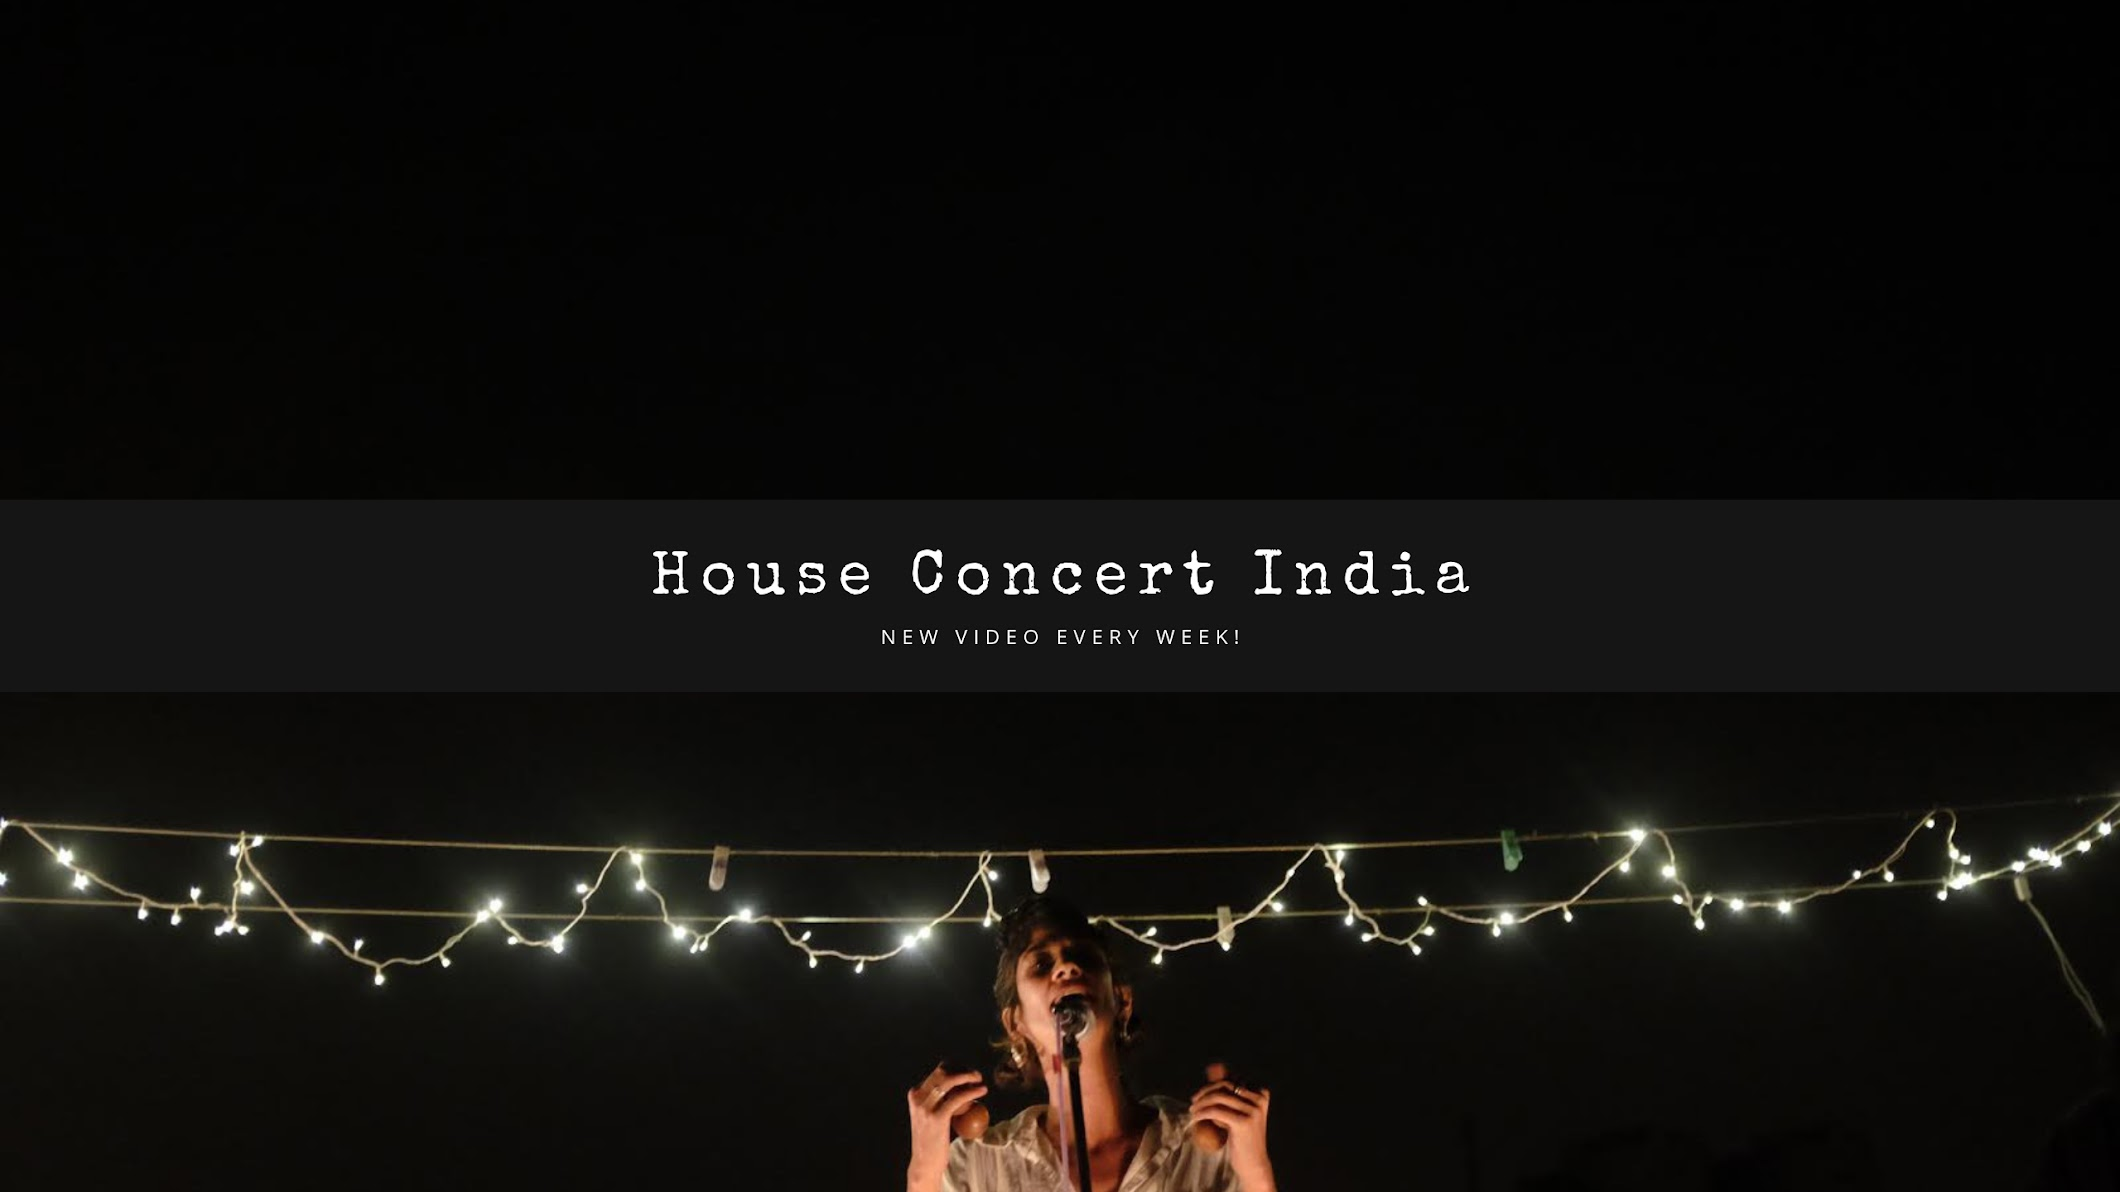 House Concert India